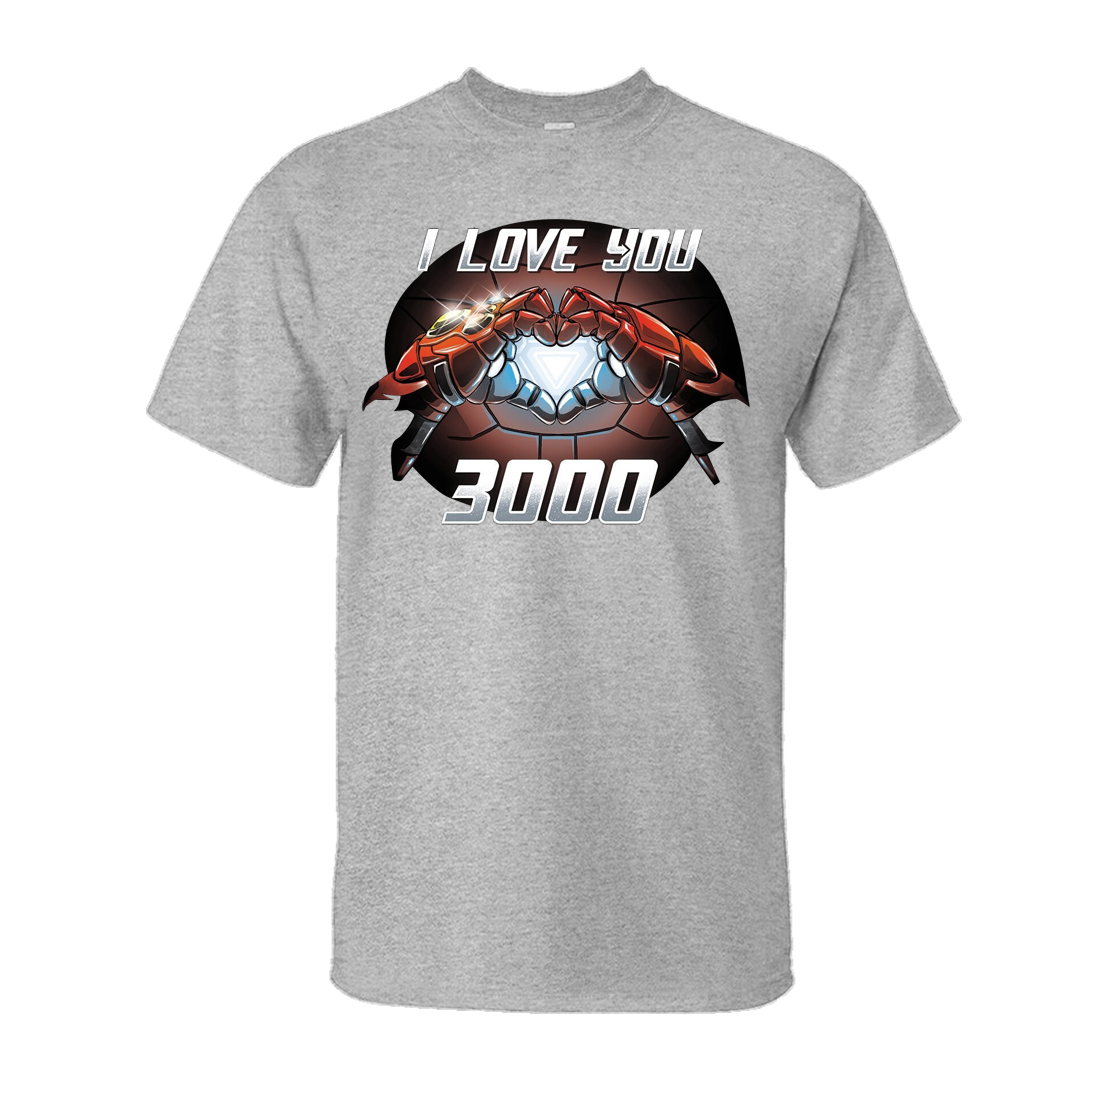 ALI shop ...  ... 33014983832 ... 3 ... Tony Stark I Love You 3000 T-Shirt Men The Avengers Iron Man Moive Shirt 2019 New Summer Casual Plus Size Tops Tees S-3XL ...